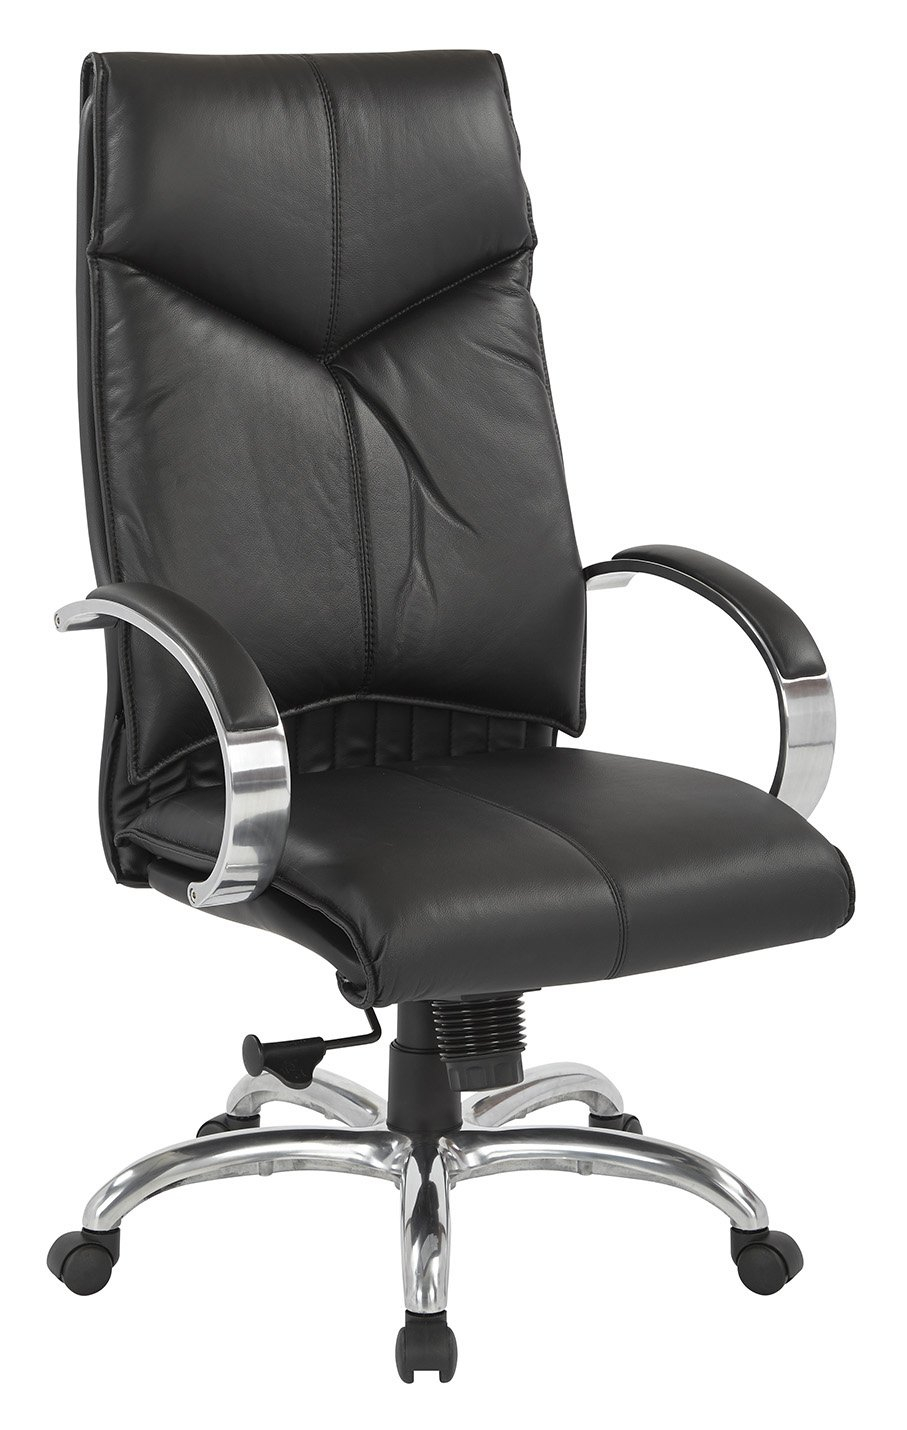 Top Grain Black Leather High Back Swivel Chair With Chrome Base Throughout Leather Black Swivel Chairs (View 12 of 25)